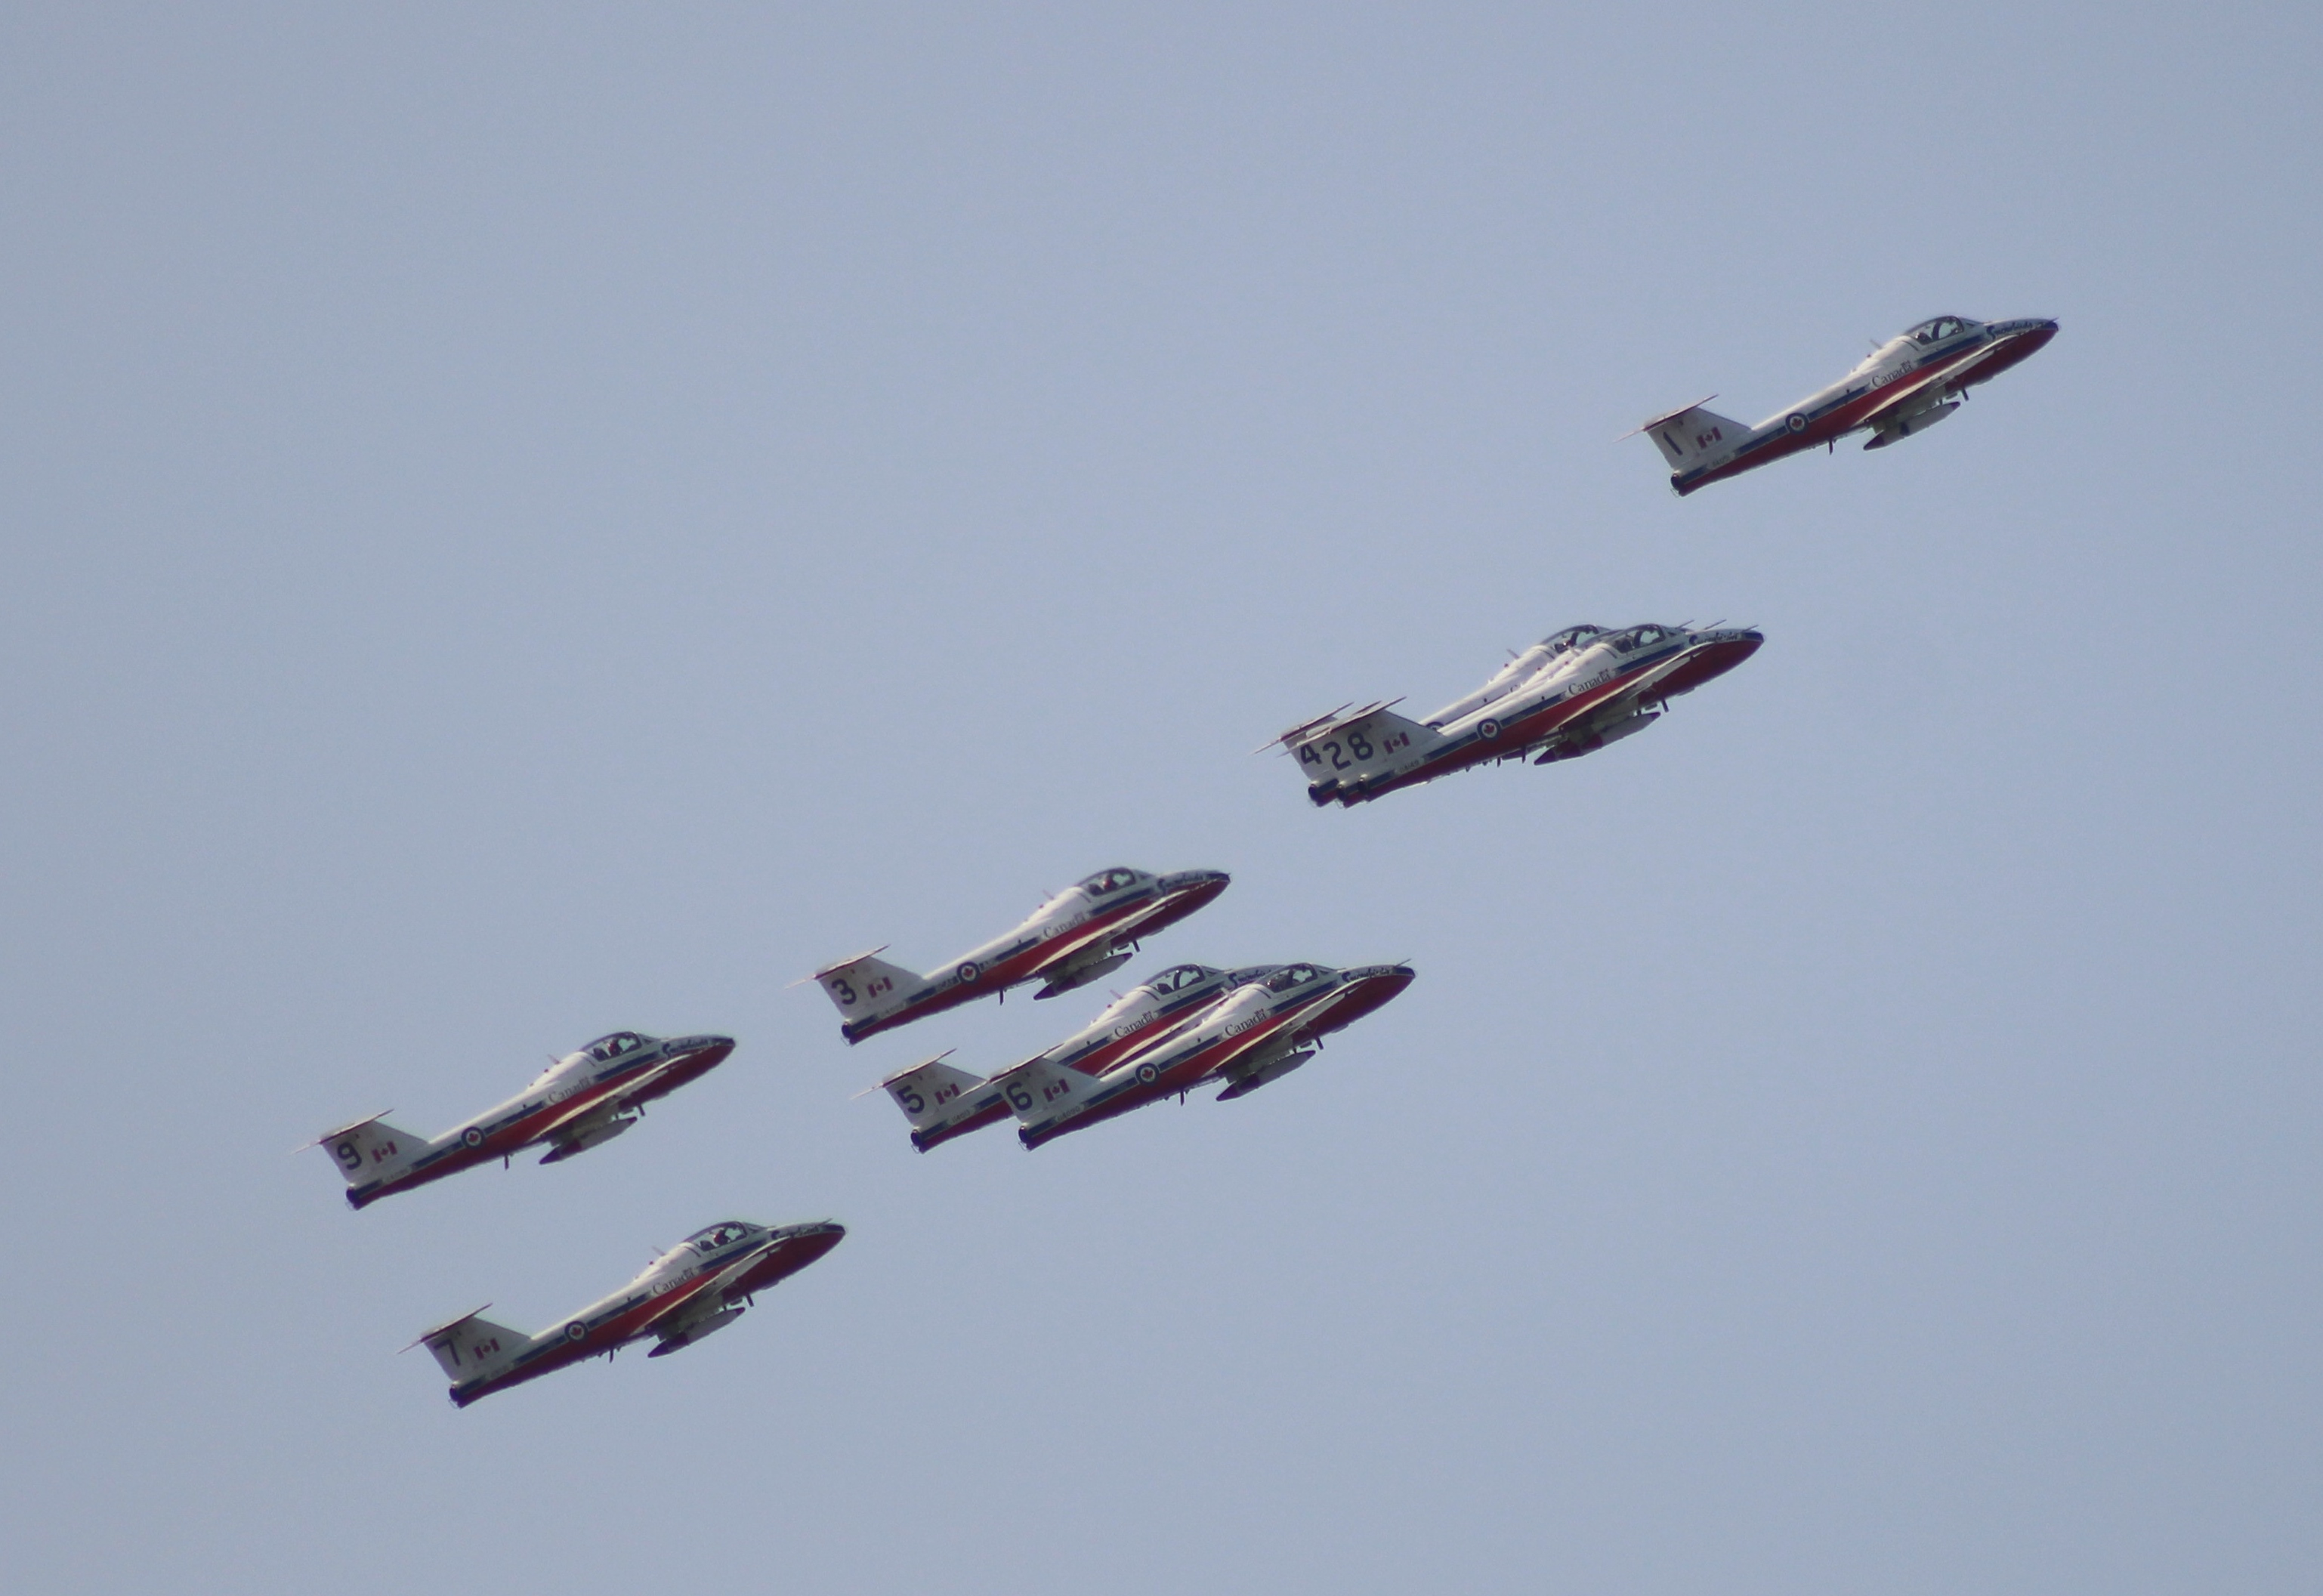 another formation view of the snowbirds